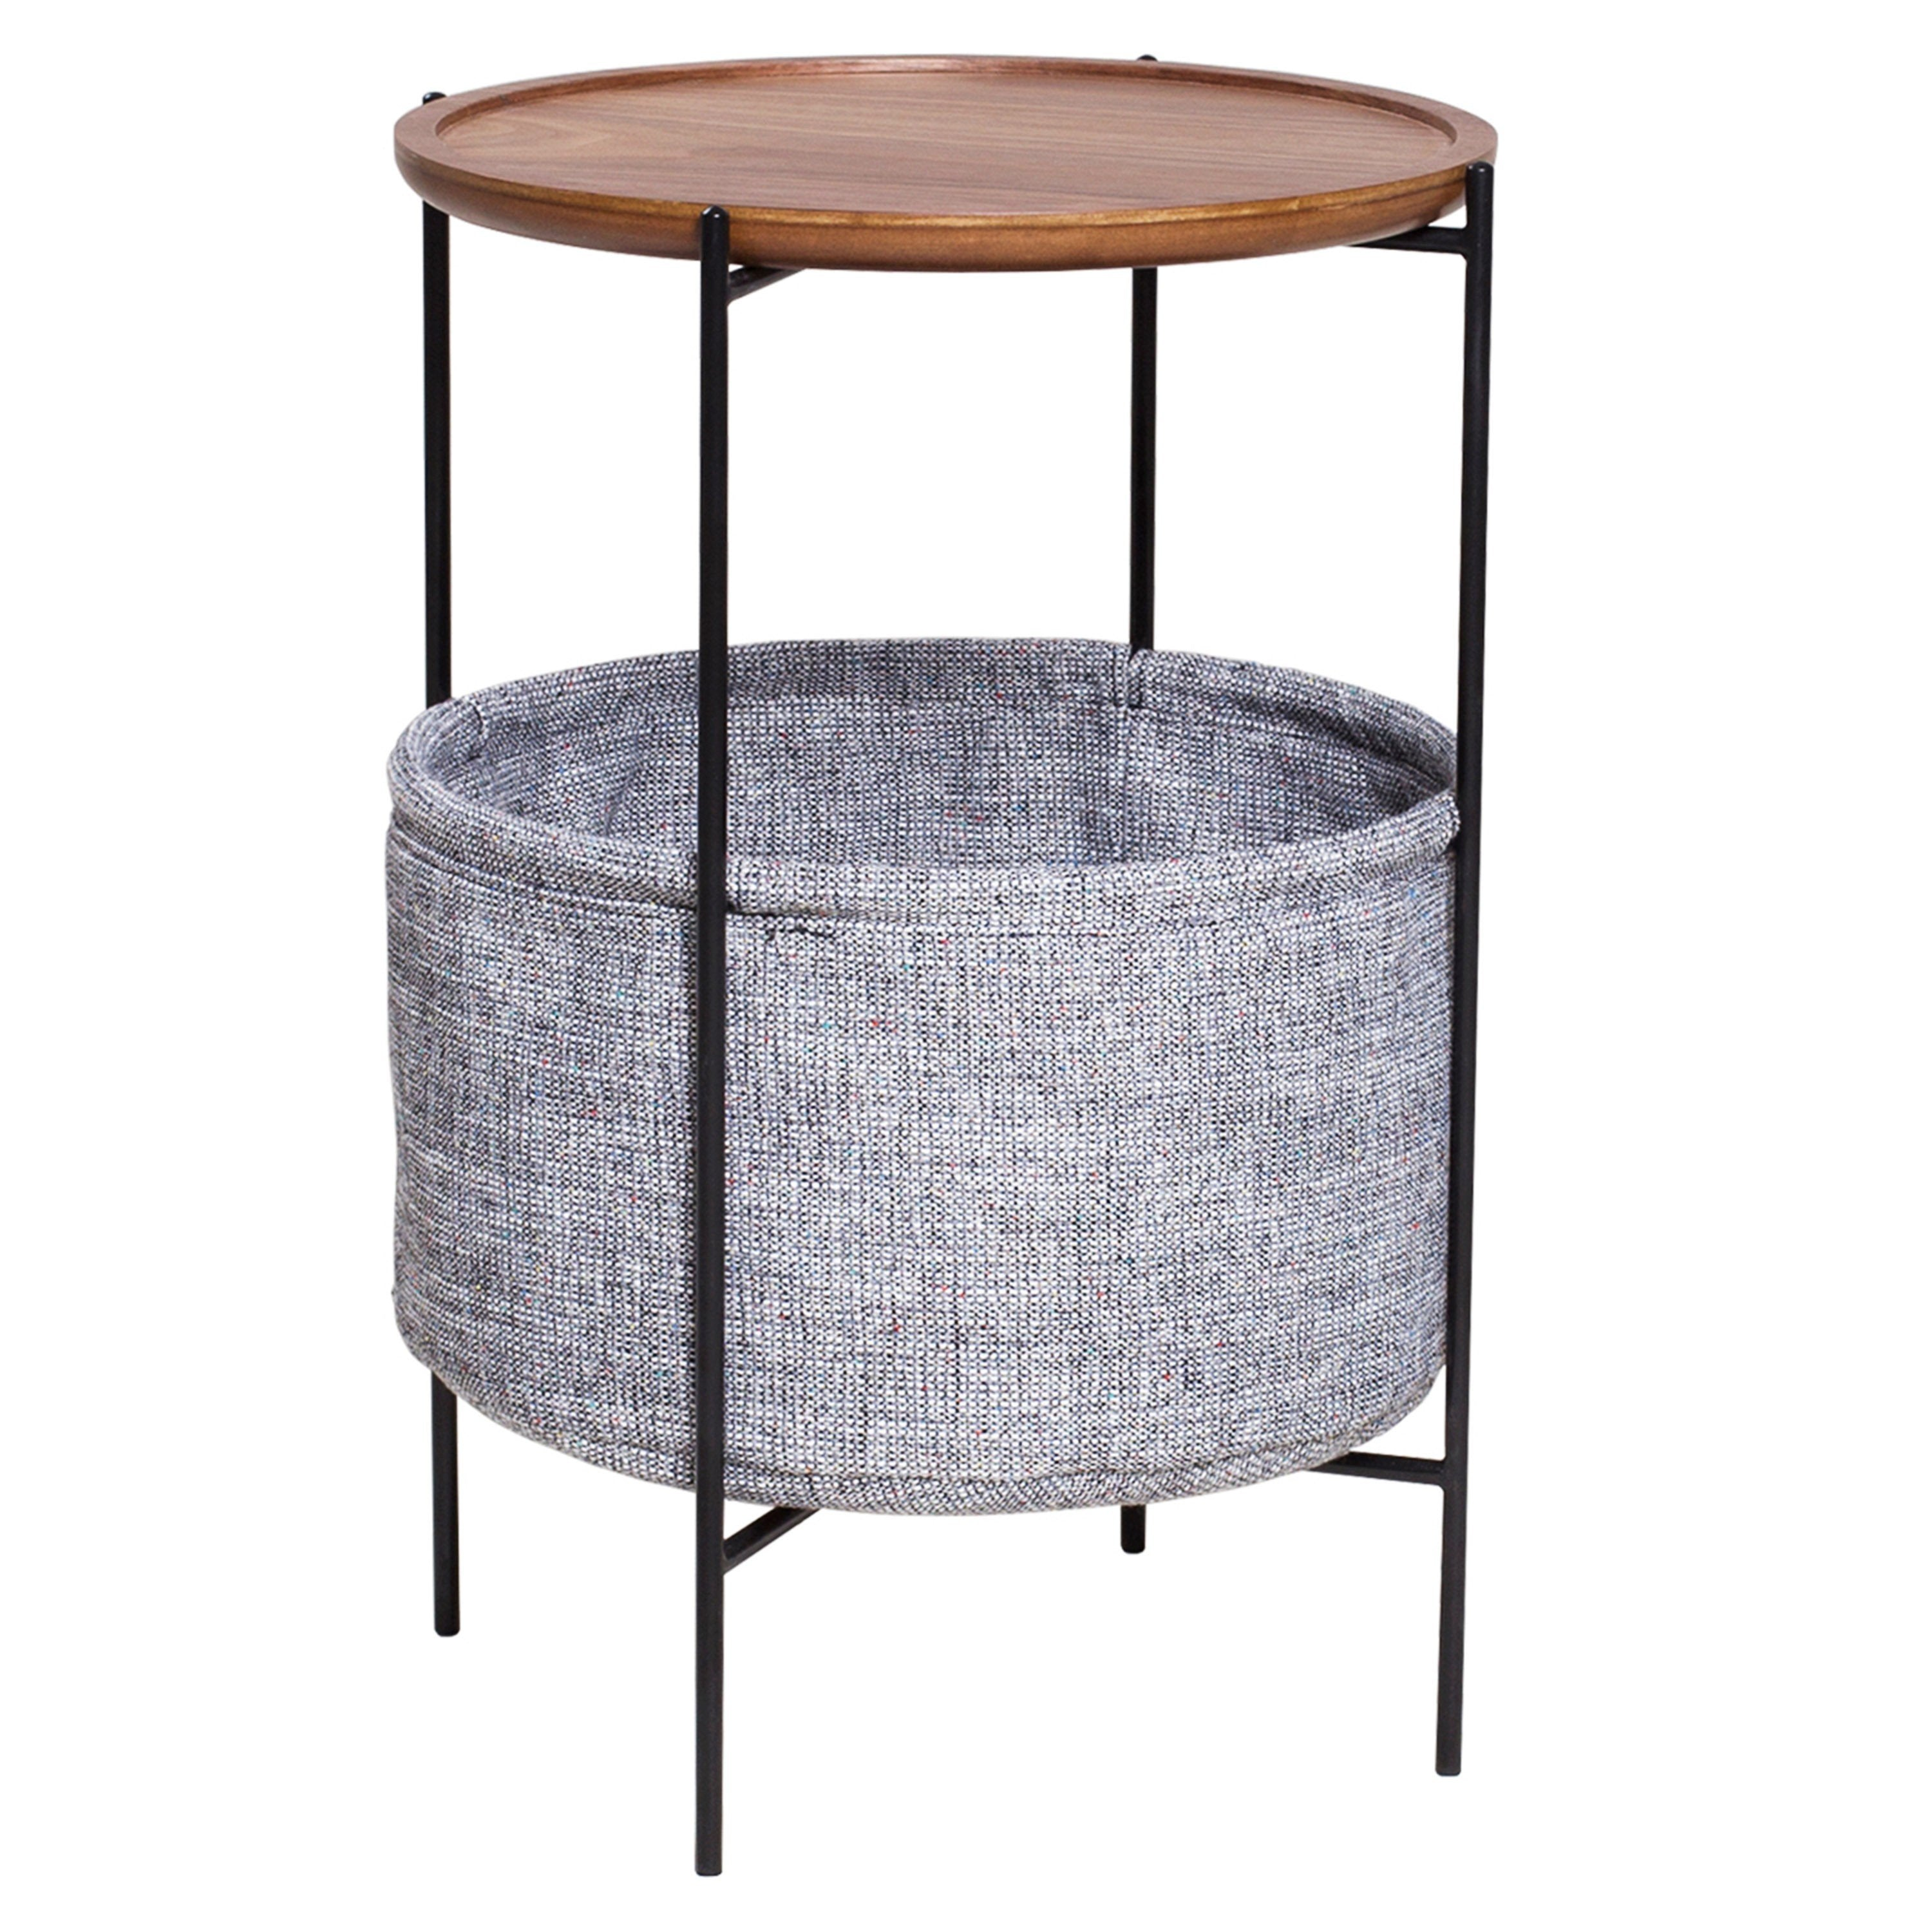 magnolia pier item and end products table by gaines joanna industrial home beam